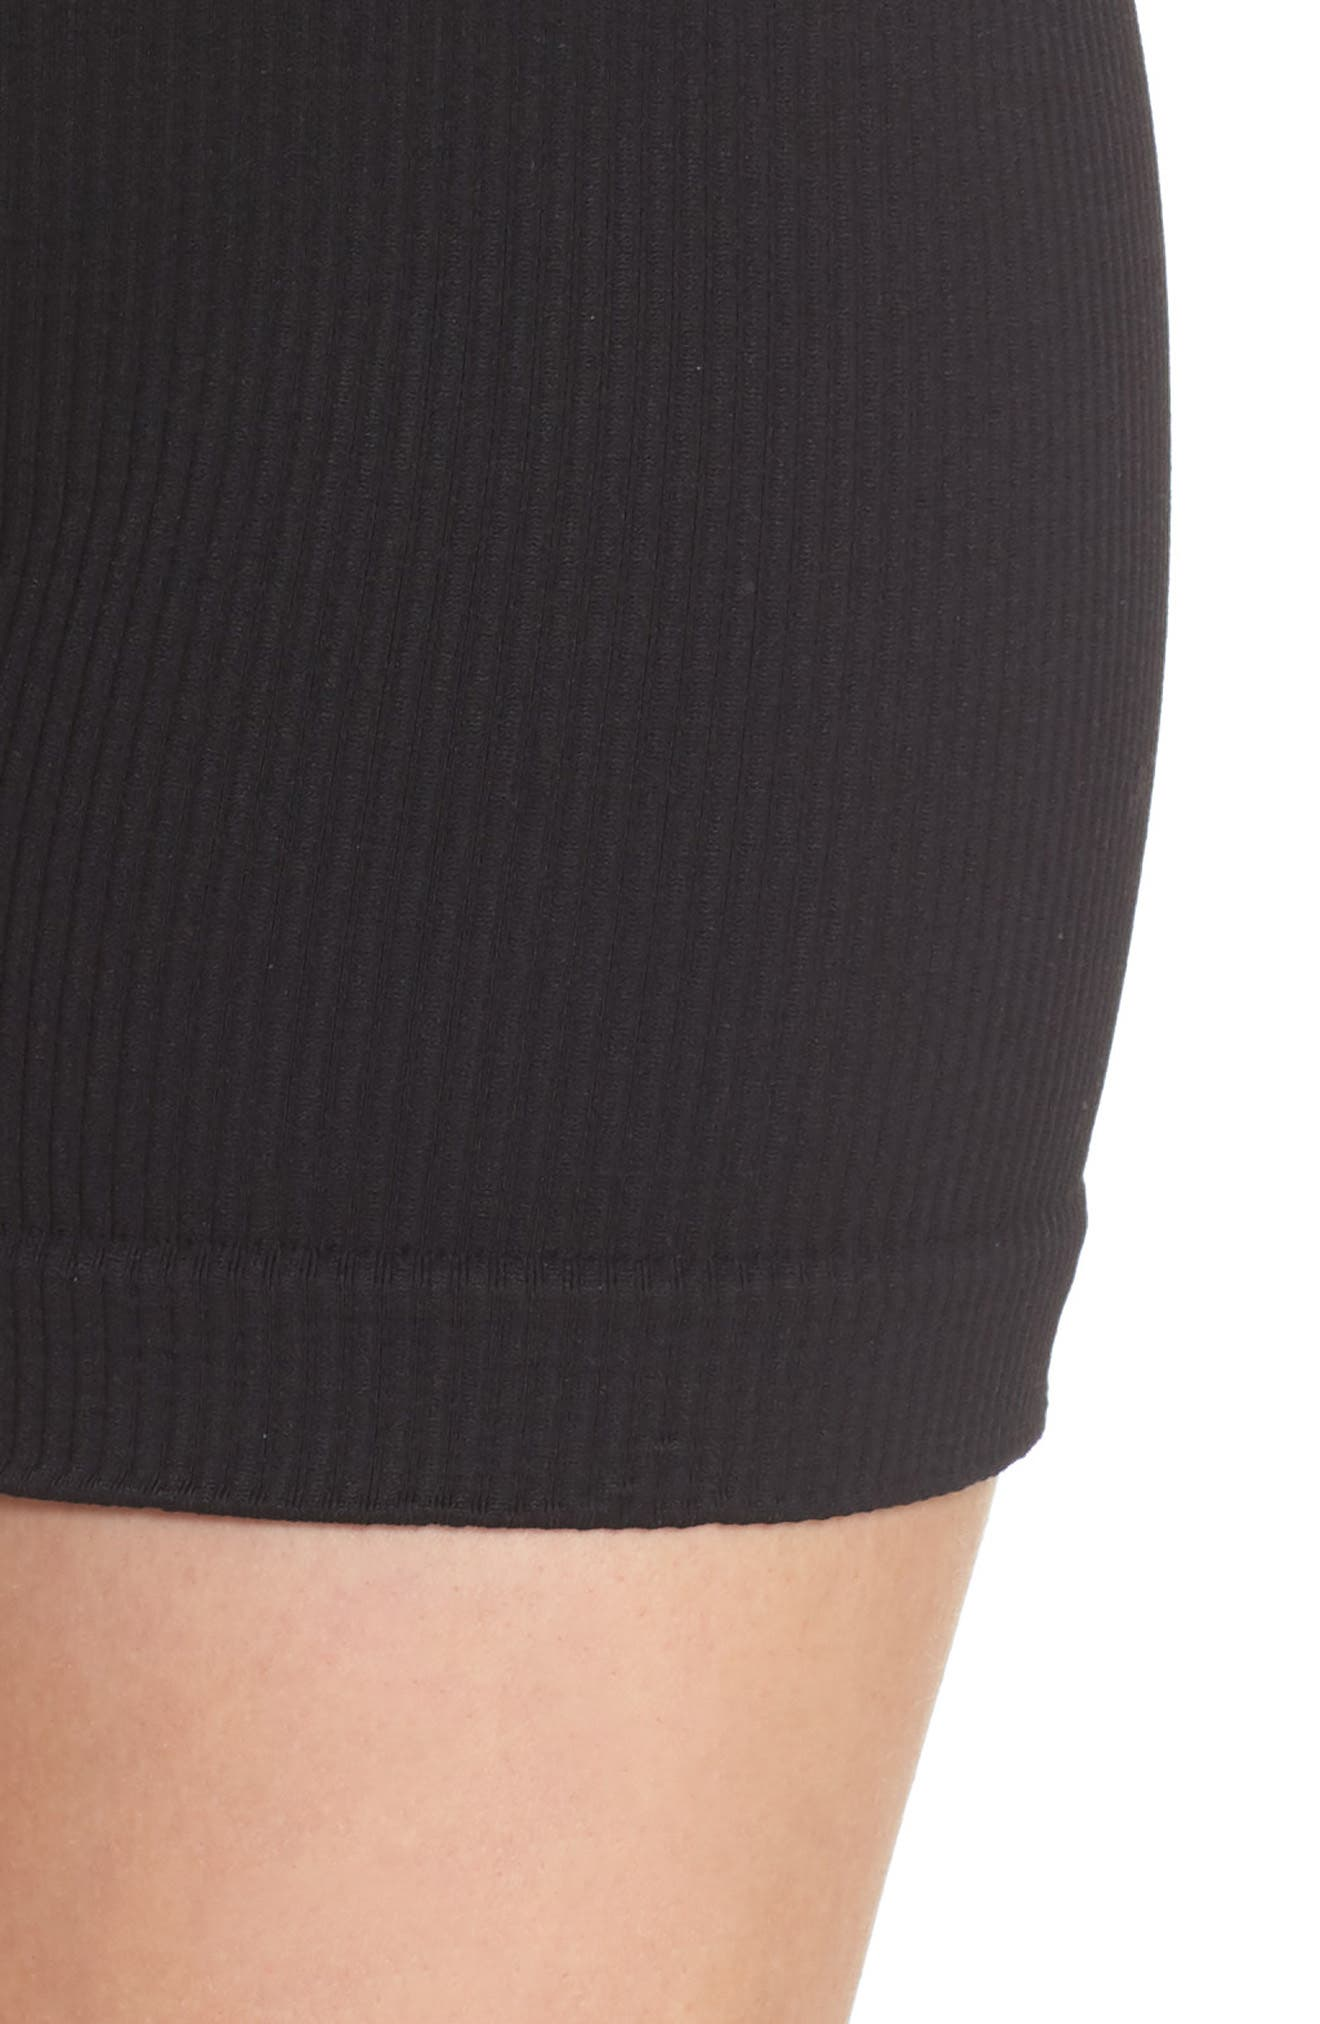 Free People Seamless Shorts,                             Alternate thumbnail 8, color,